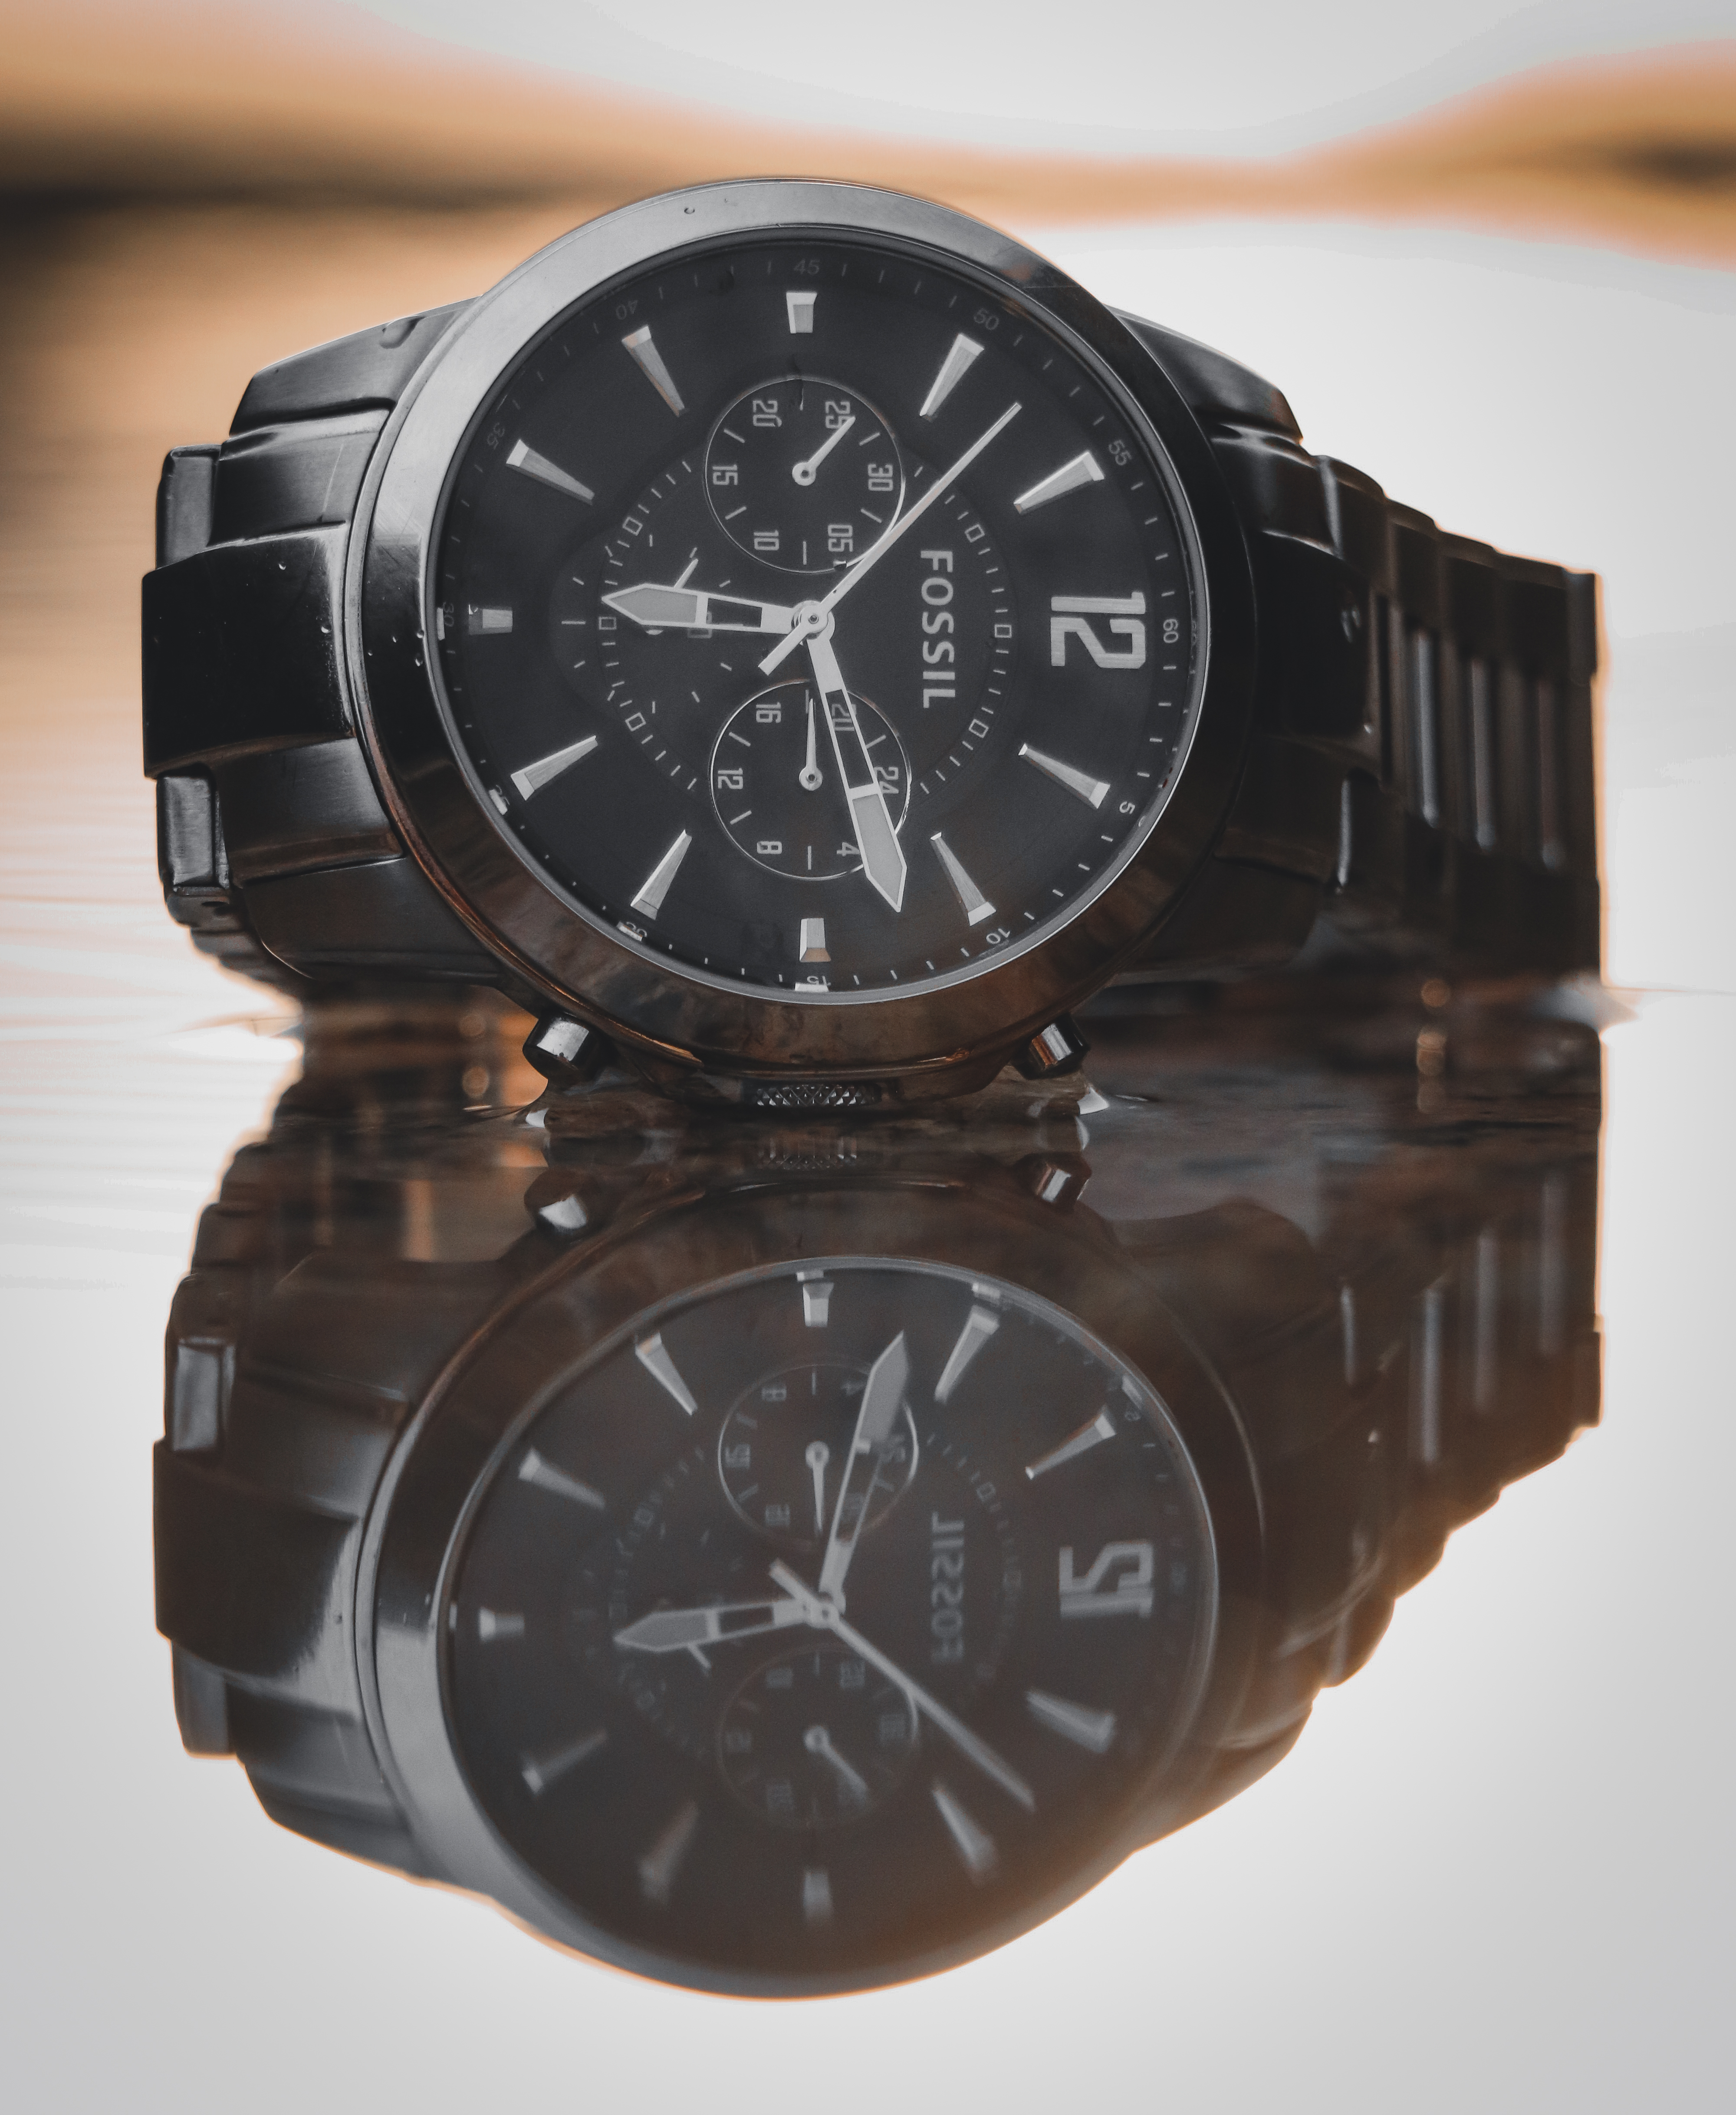 Round Black Fossil Chronograph Watch With Link Band